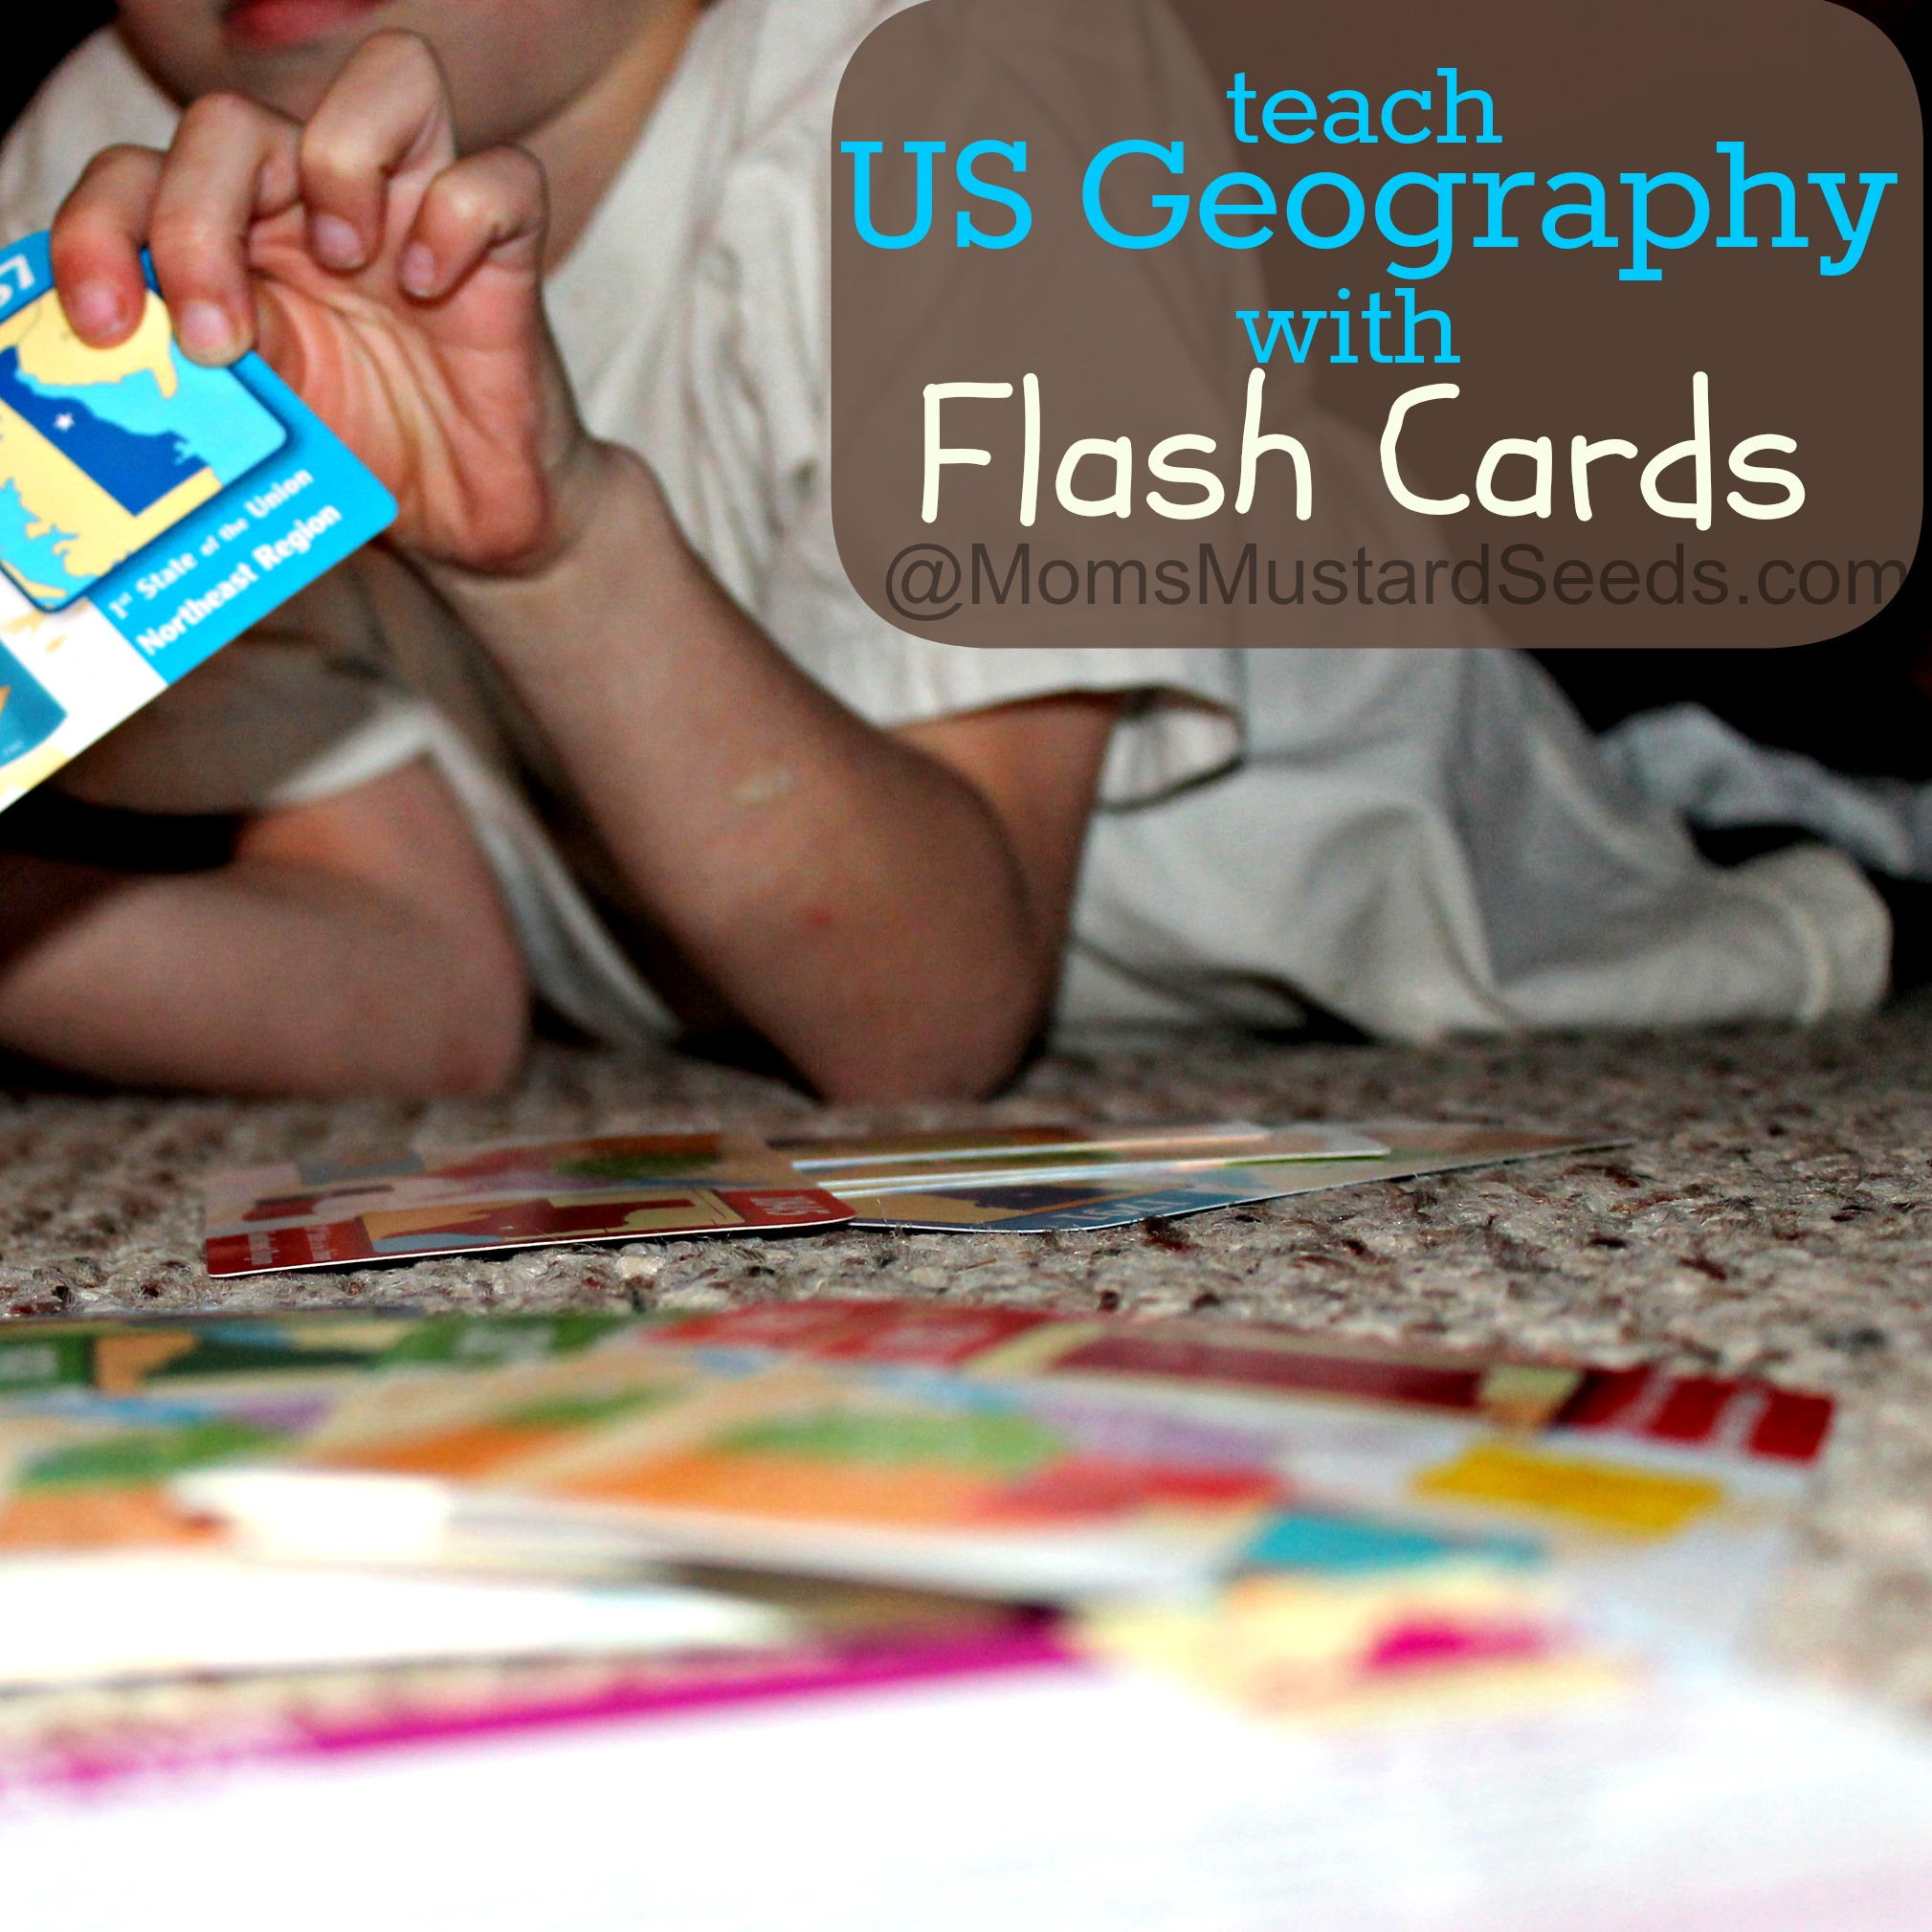 Teach US Geography with Flash Cards